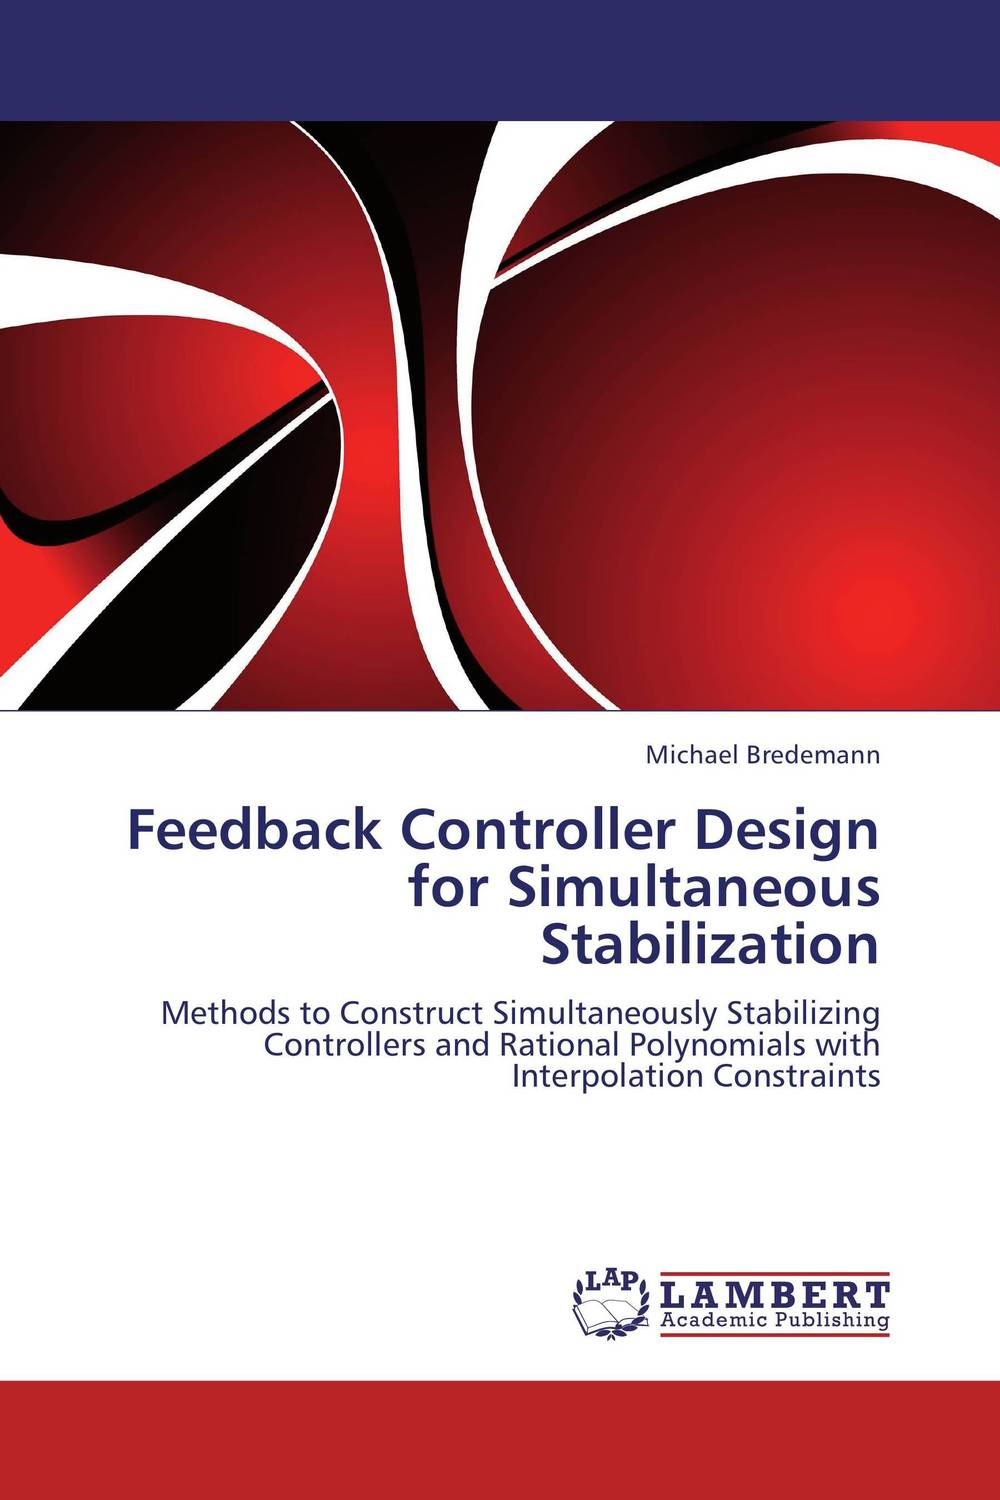 Feedback Controller Design for Simultaneous Stabilization